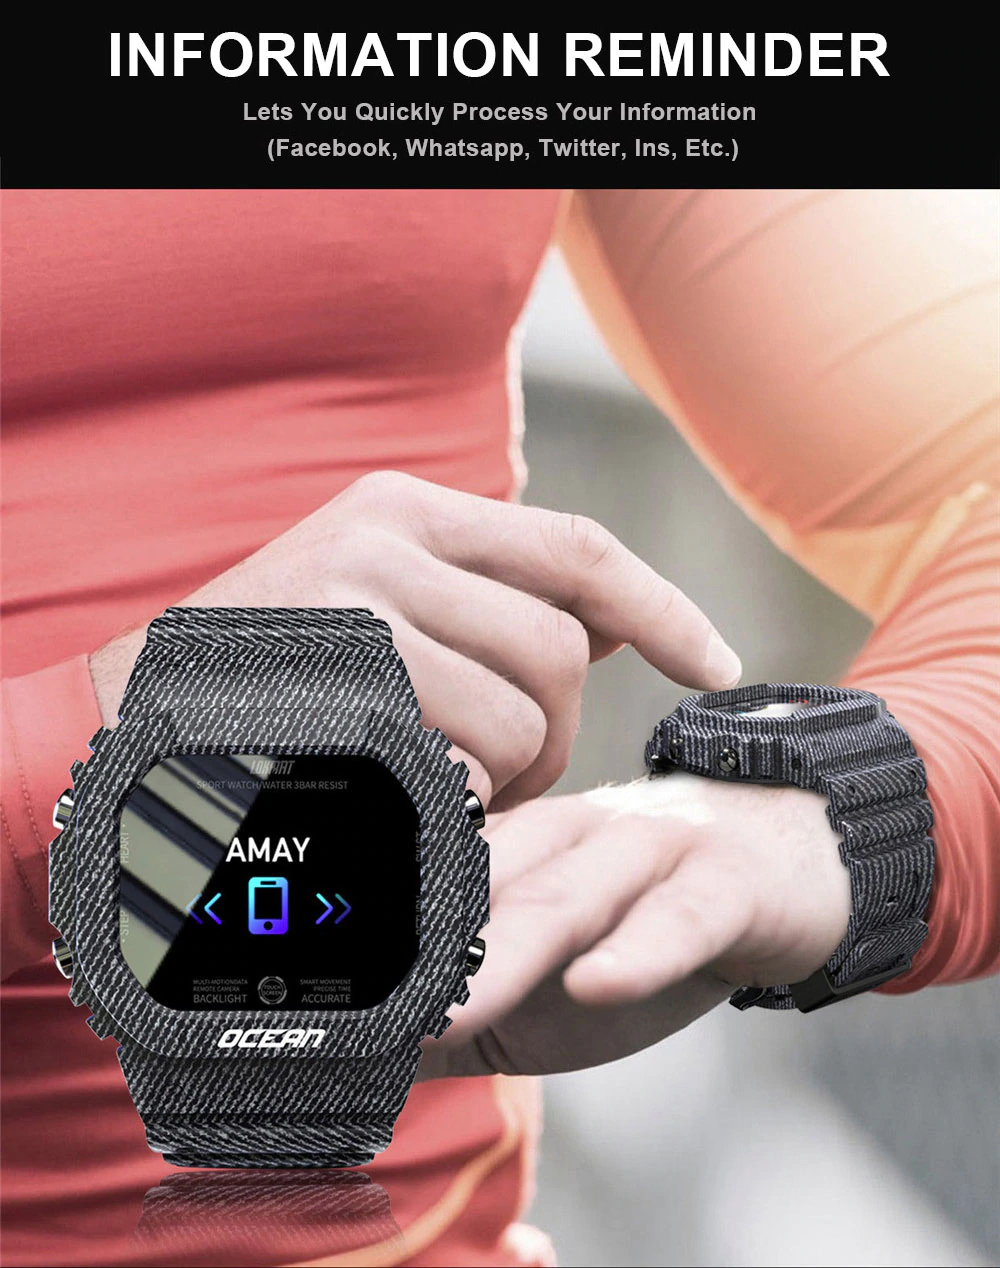 Ocean Smartwatch Downlad the DayBand App to your smartphone, tracking, calorie burn tracking, goal setting, exercise tracking, information reminder, remote camera, multiple alarms, sleep mode, and more! Pedometer: Women's womens women watches watch trackers tracker smartwatches smart sleep monitor Rate